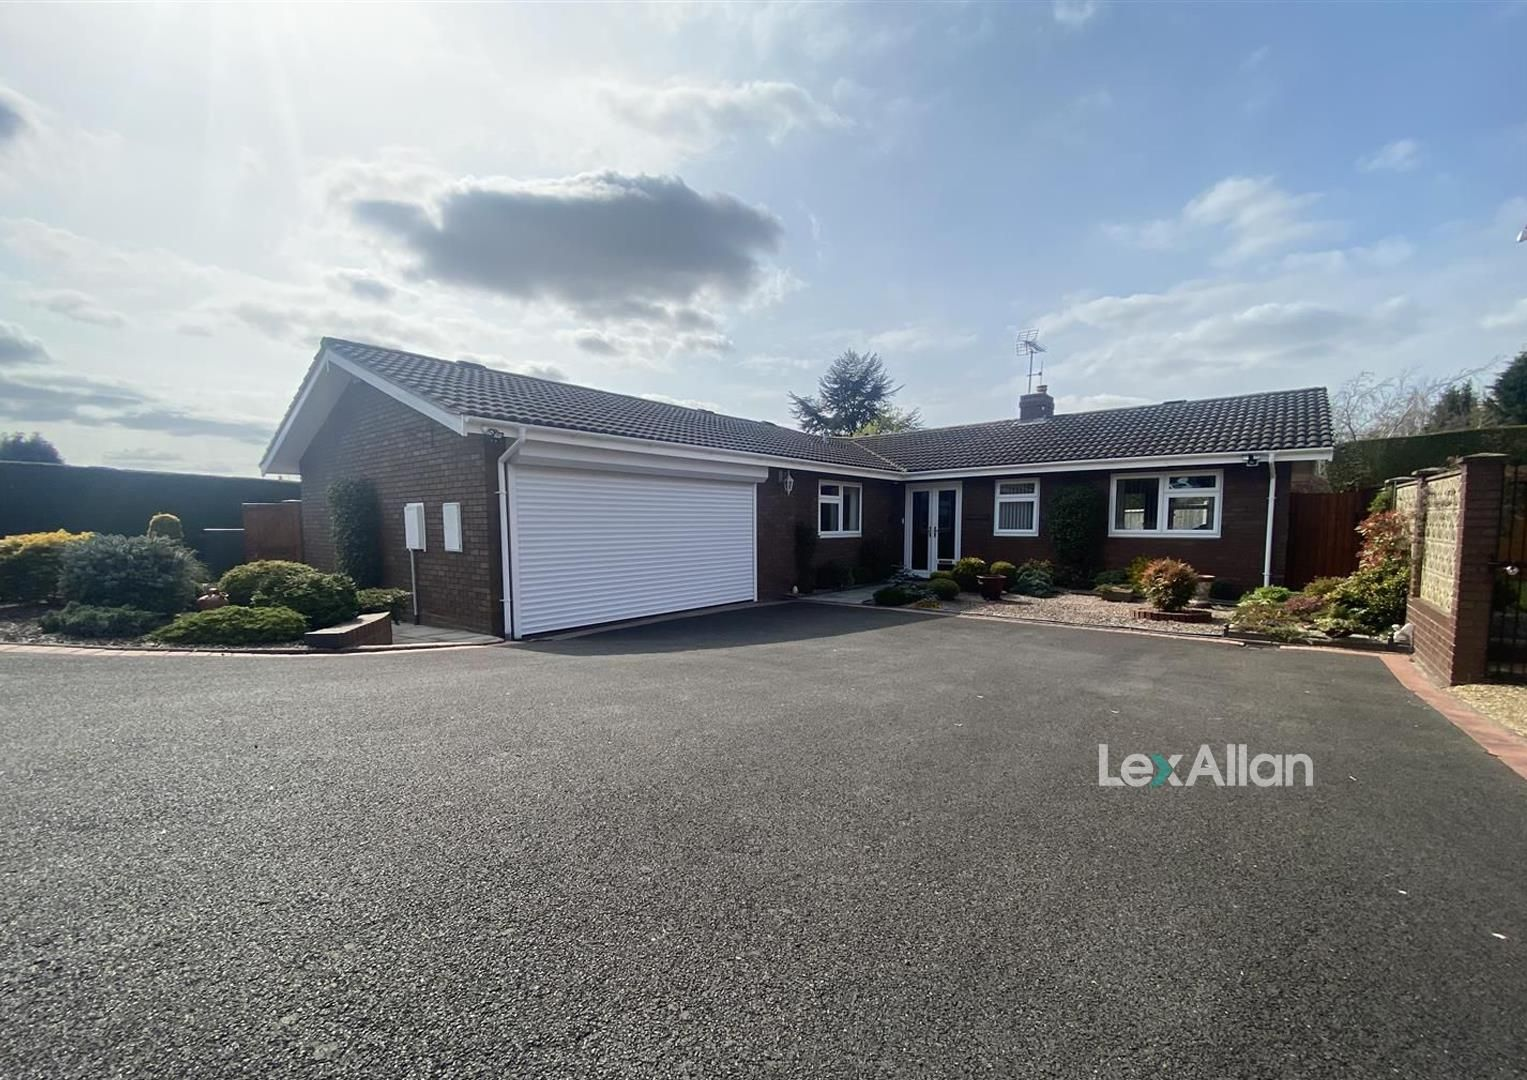 3 bed detached-bungalow for sale in Kinver, DY7